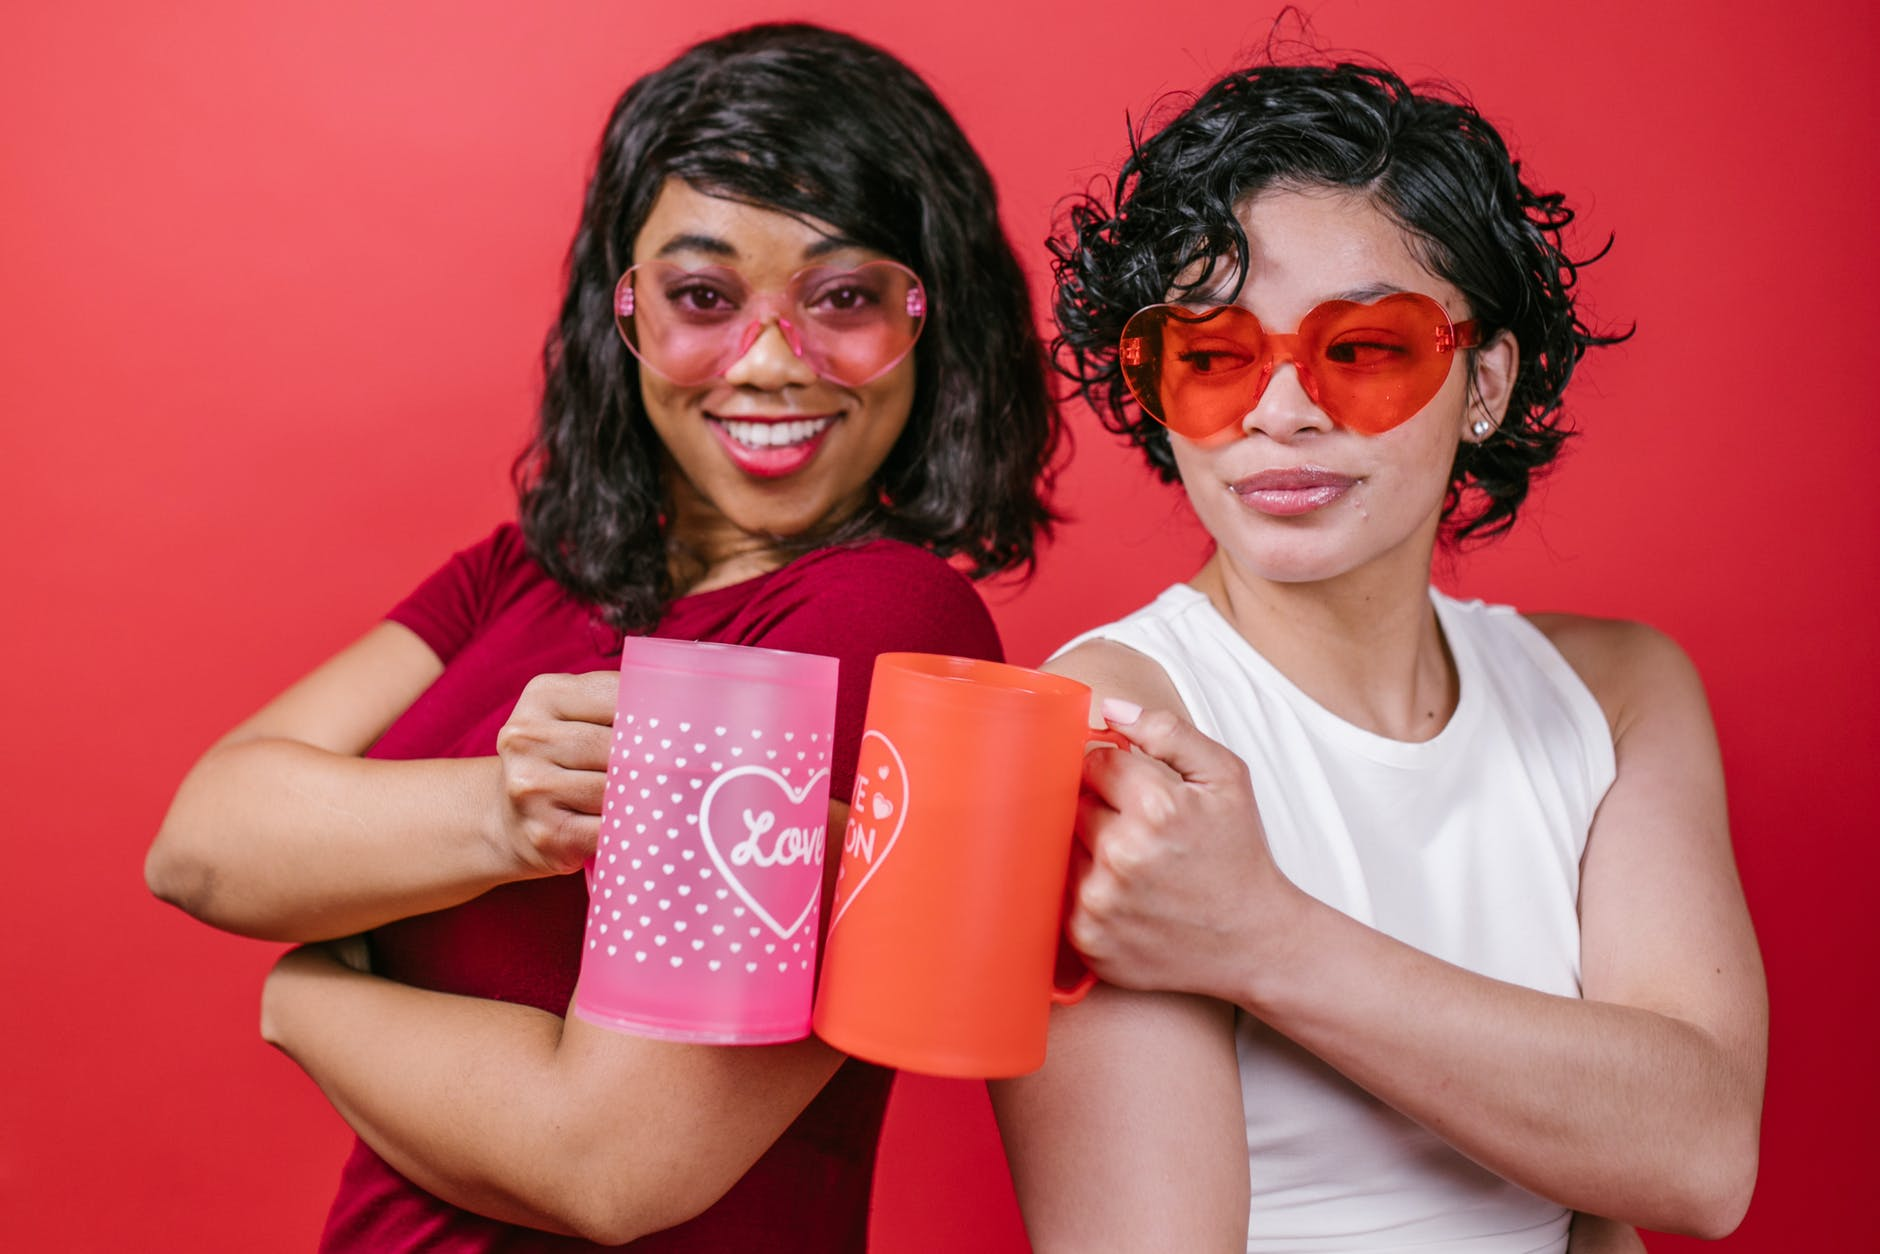 two women holding pink and red mugs